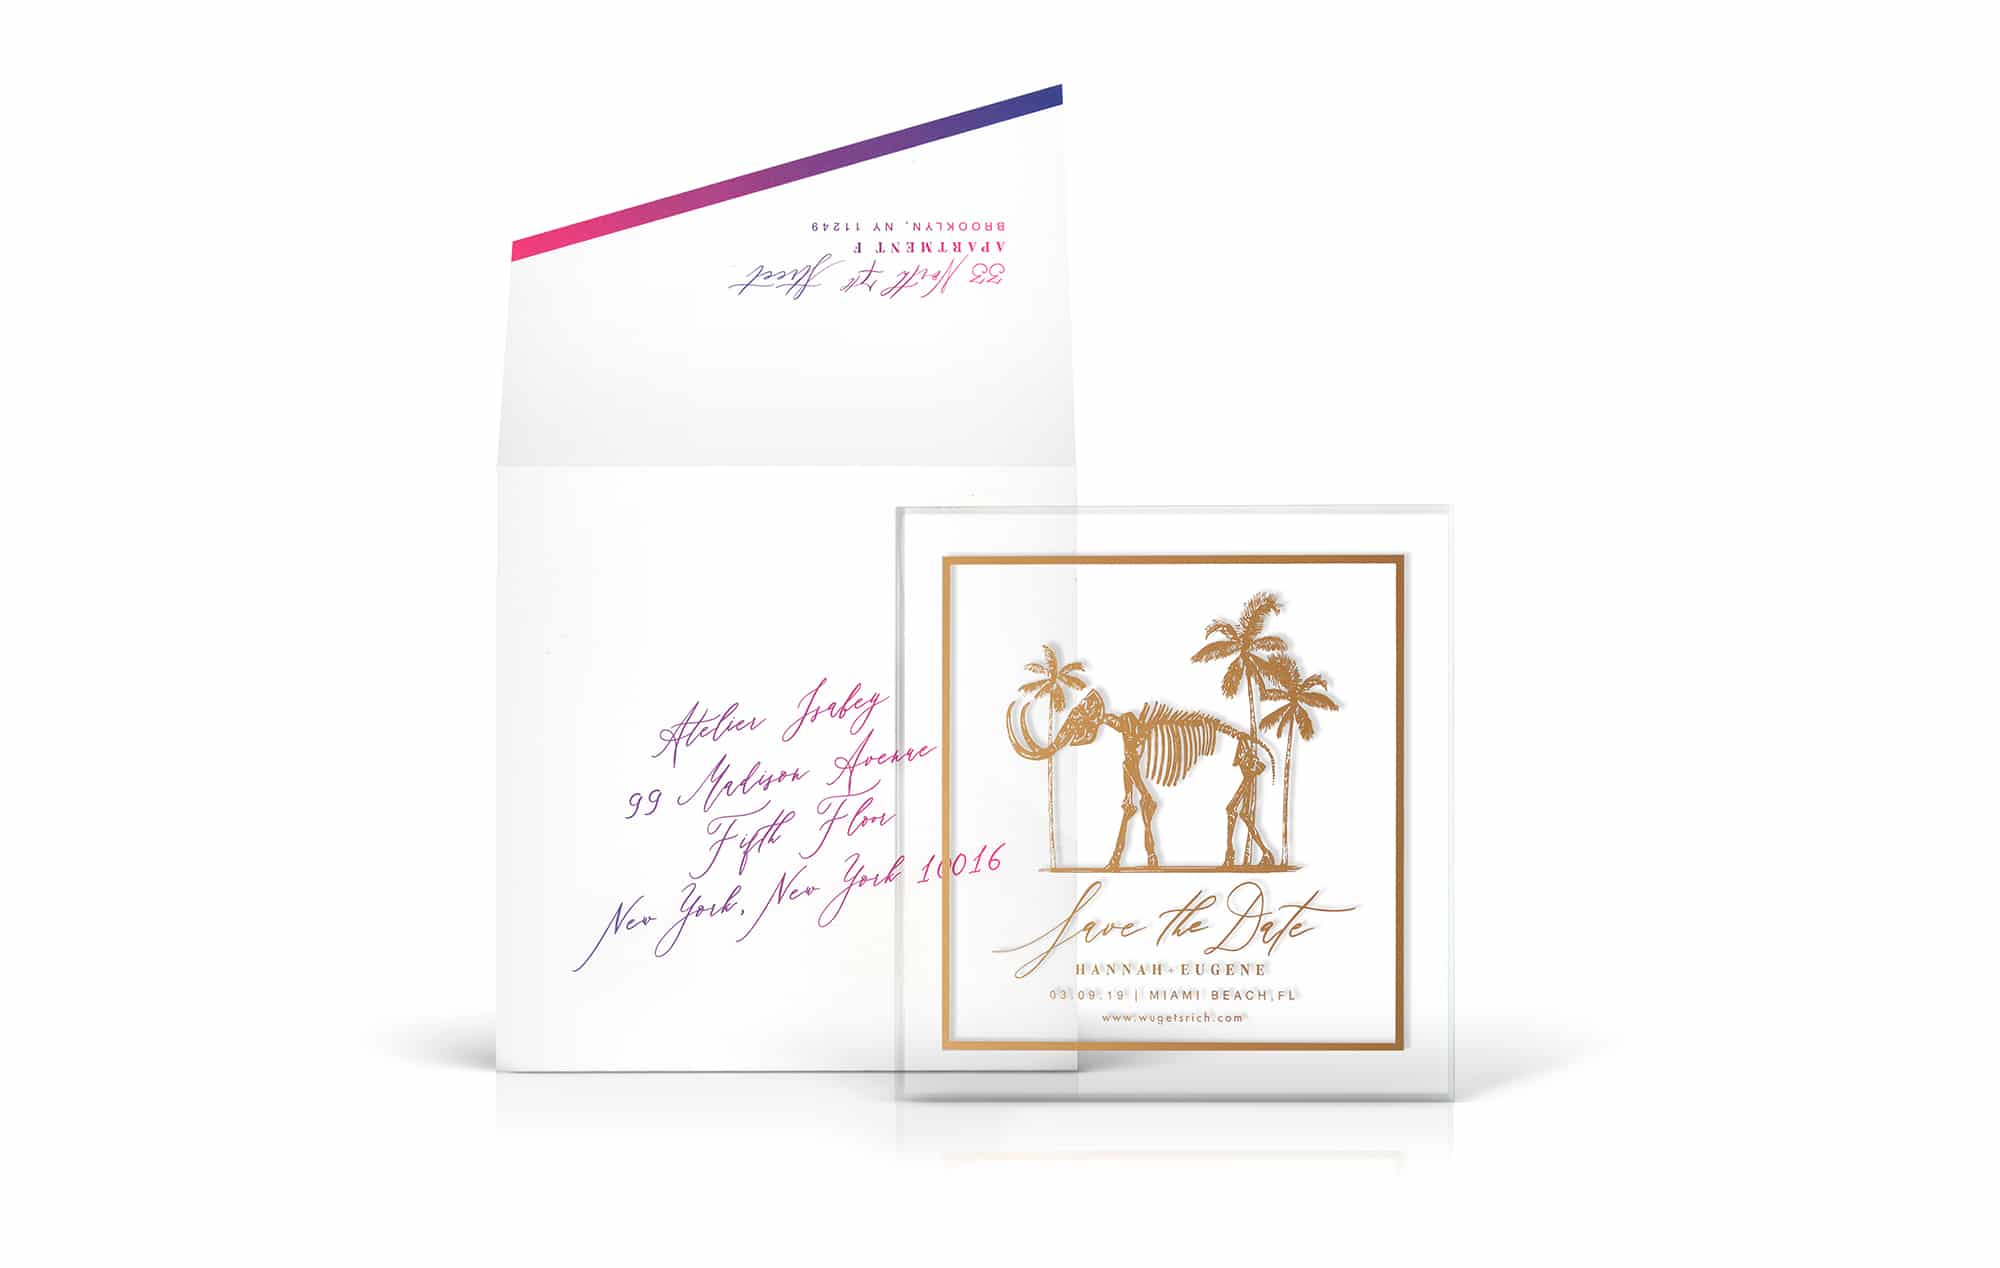 Faena mammoth inspired wedding save the date